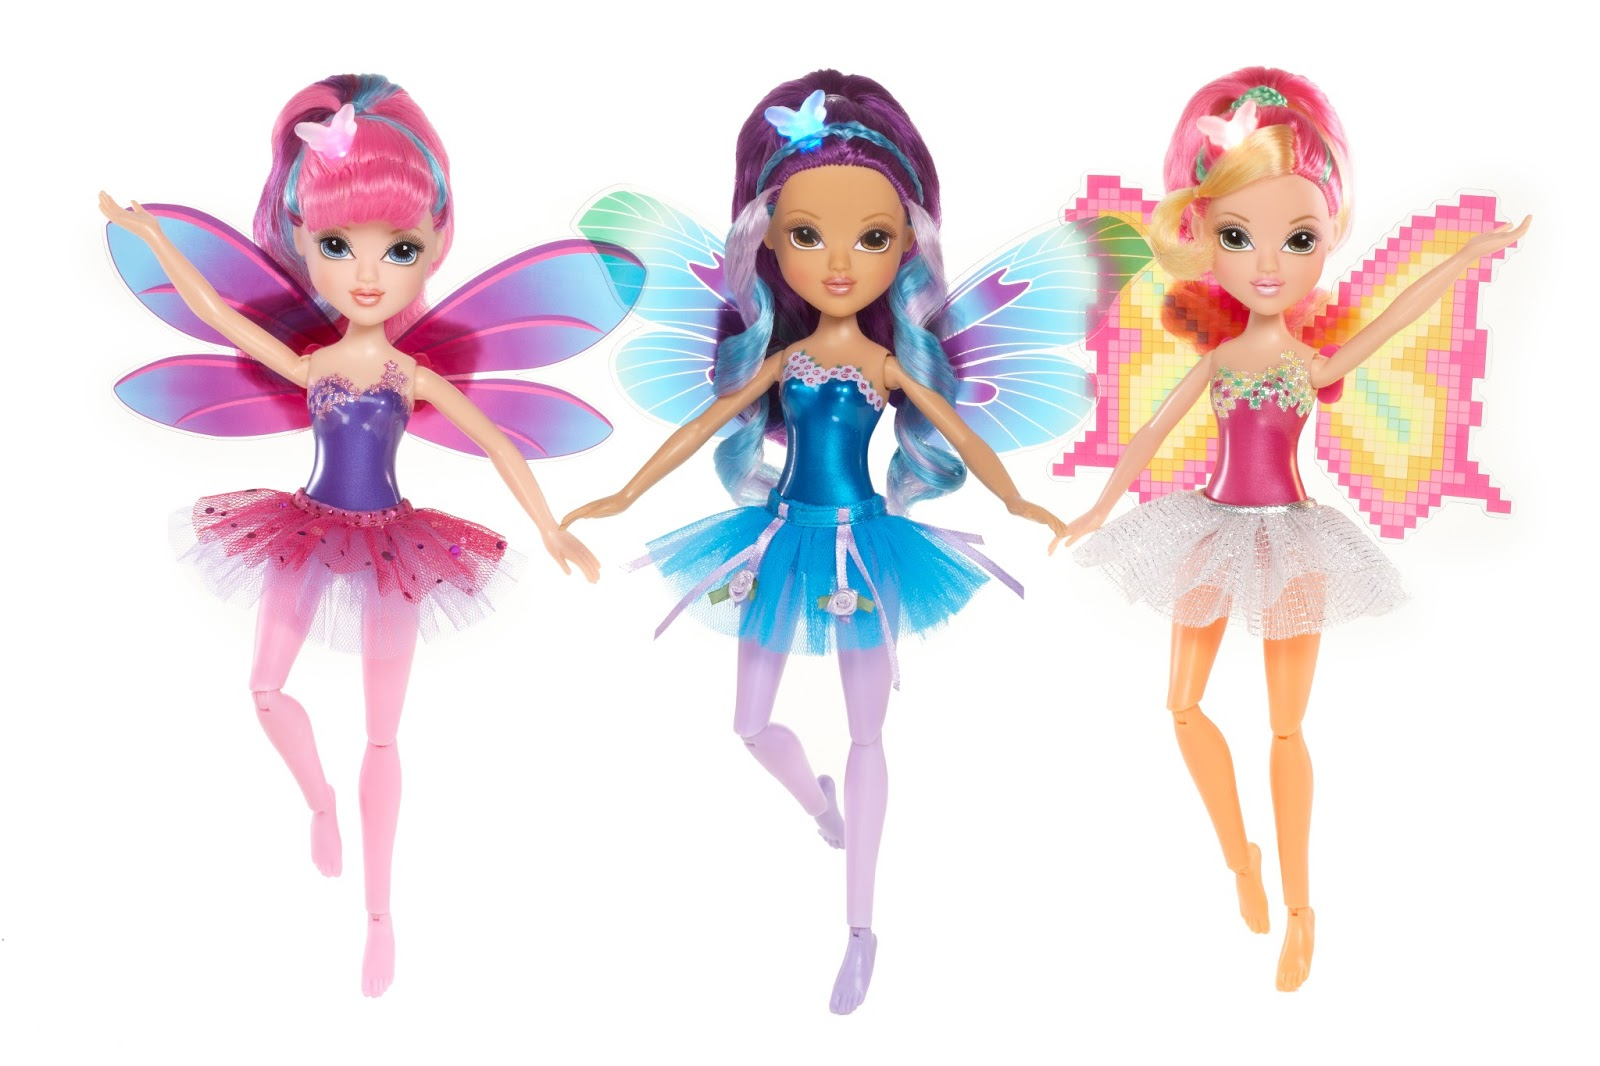 Inside The Wendy House Moxie Girlz Twinkle Bright Fairies Review